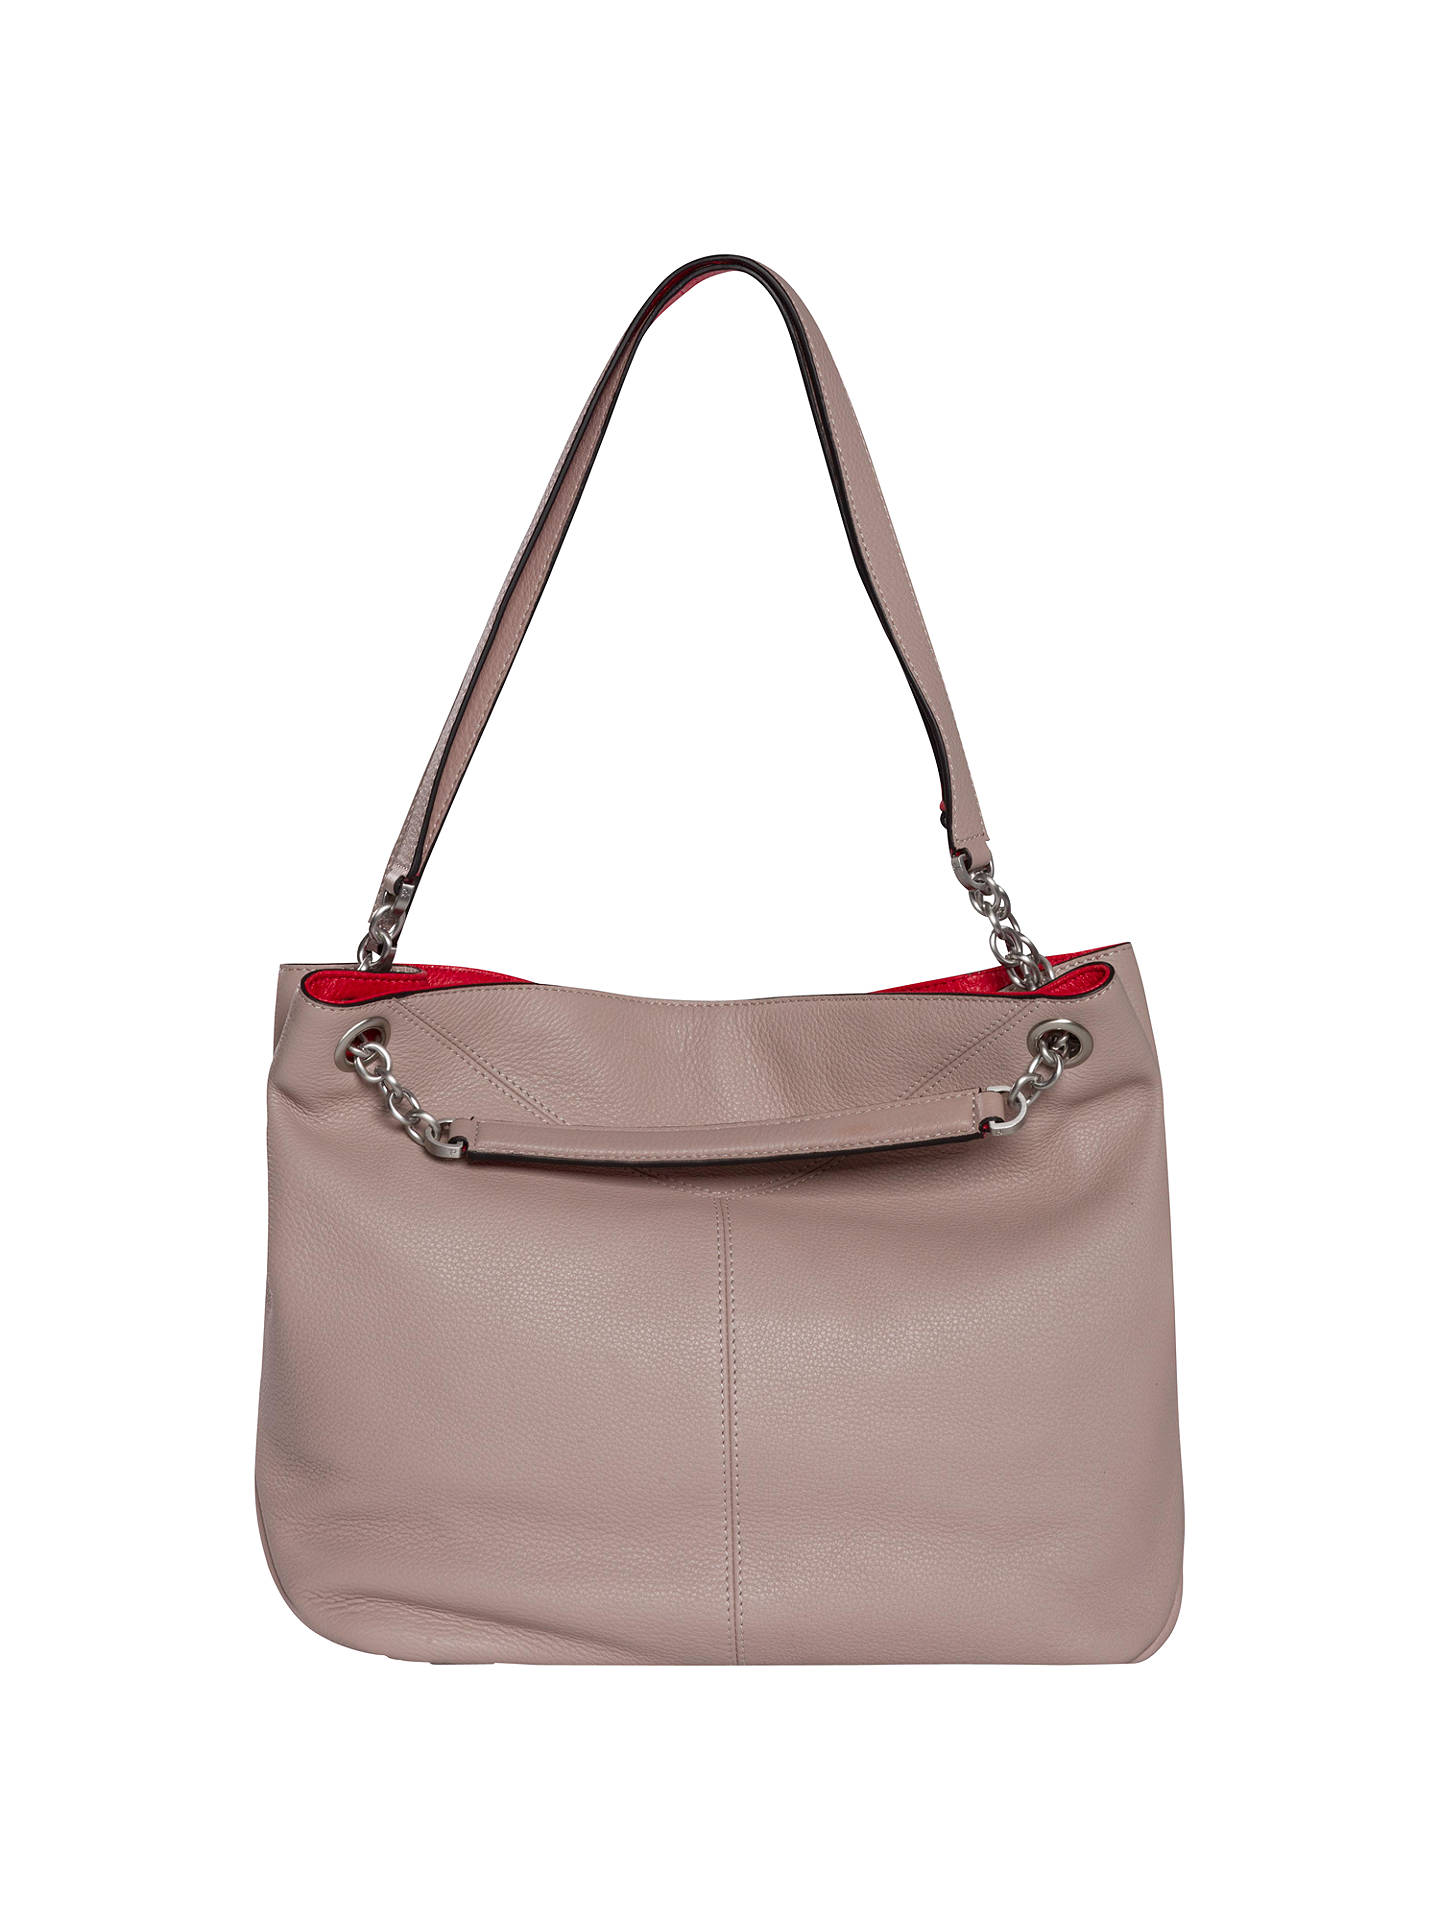 2a016b63e Buy Calvin Klein Mia Chain Saffiano Leather Tote Bag, Taupe Online at  johnlewis.com